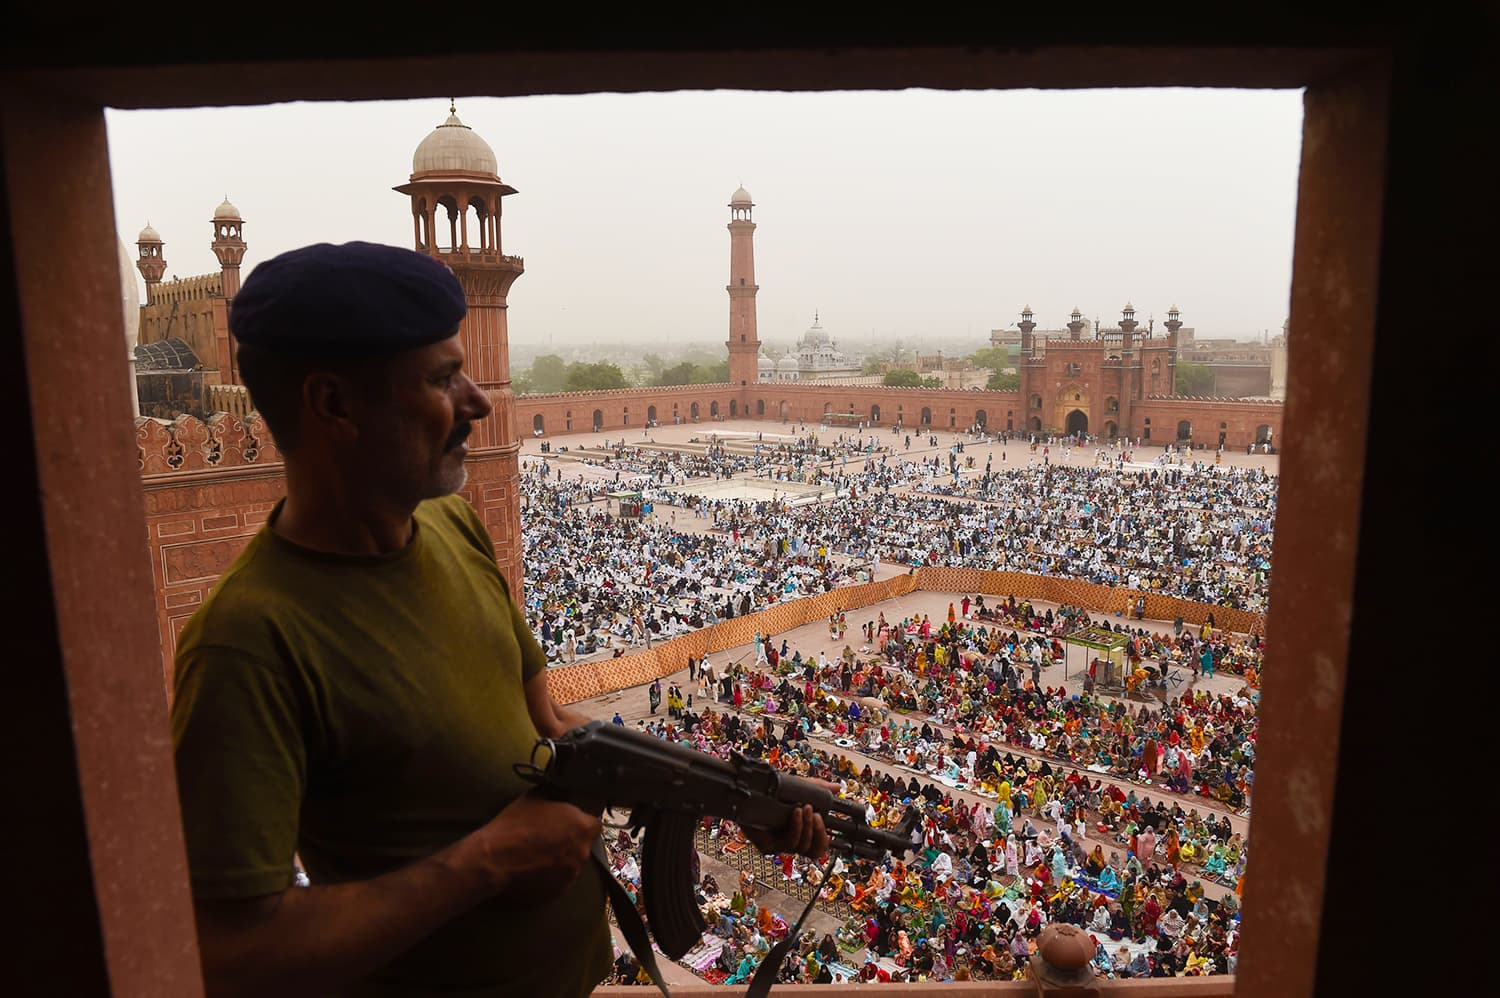 A policeman stands guard as worshippers pray to mark Eidul Fitr at the Badshahi Mosque in Lahore. — AFP